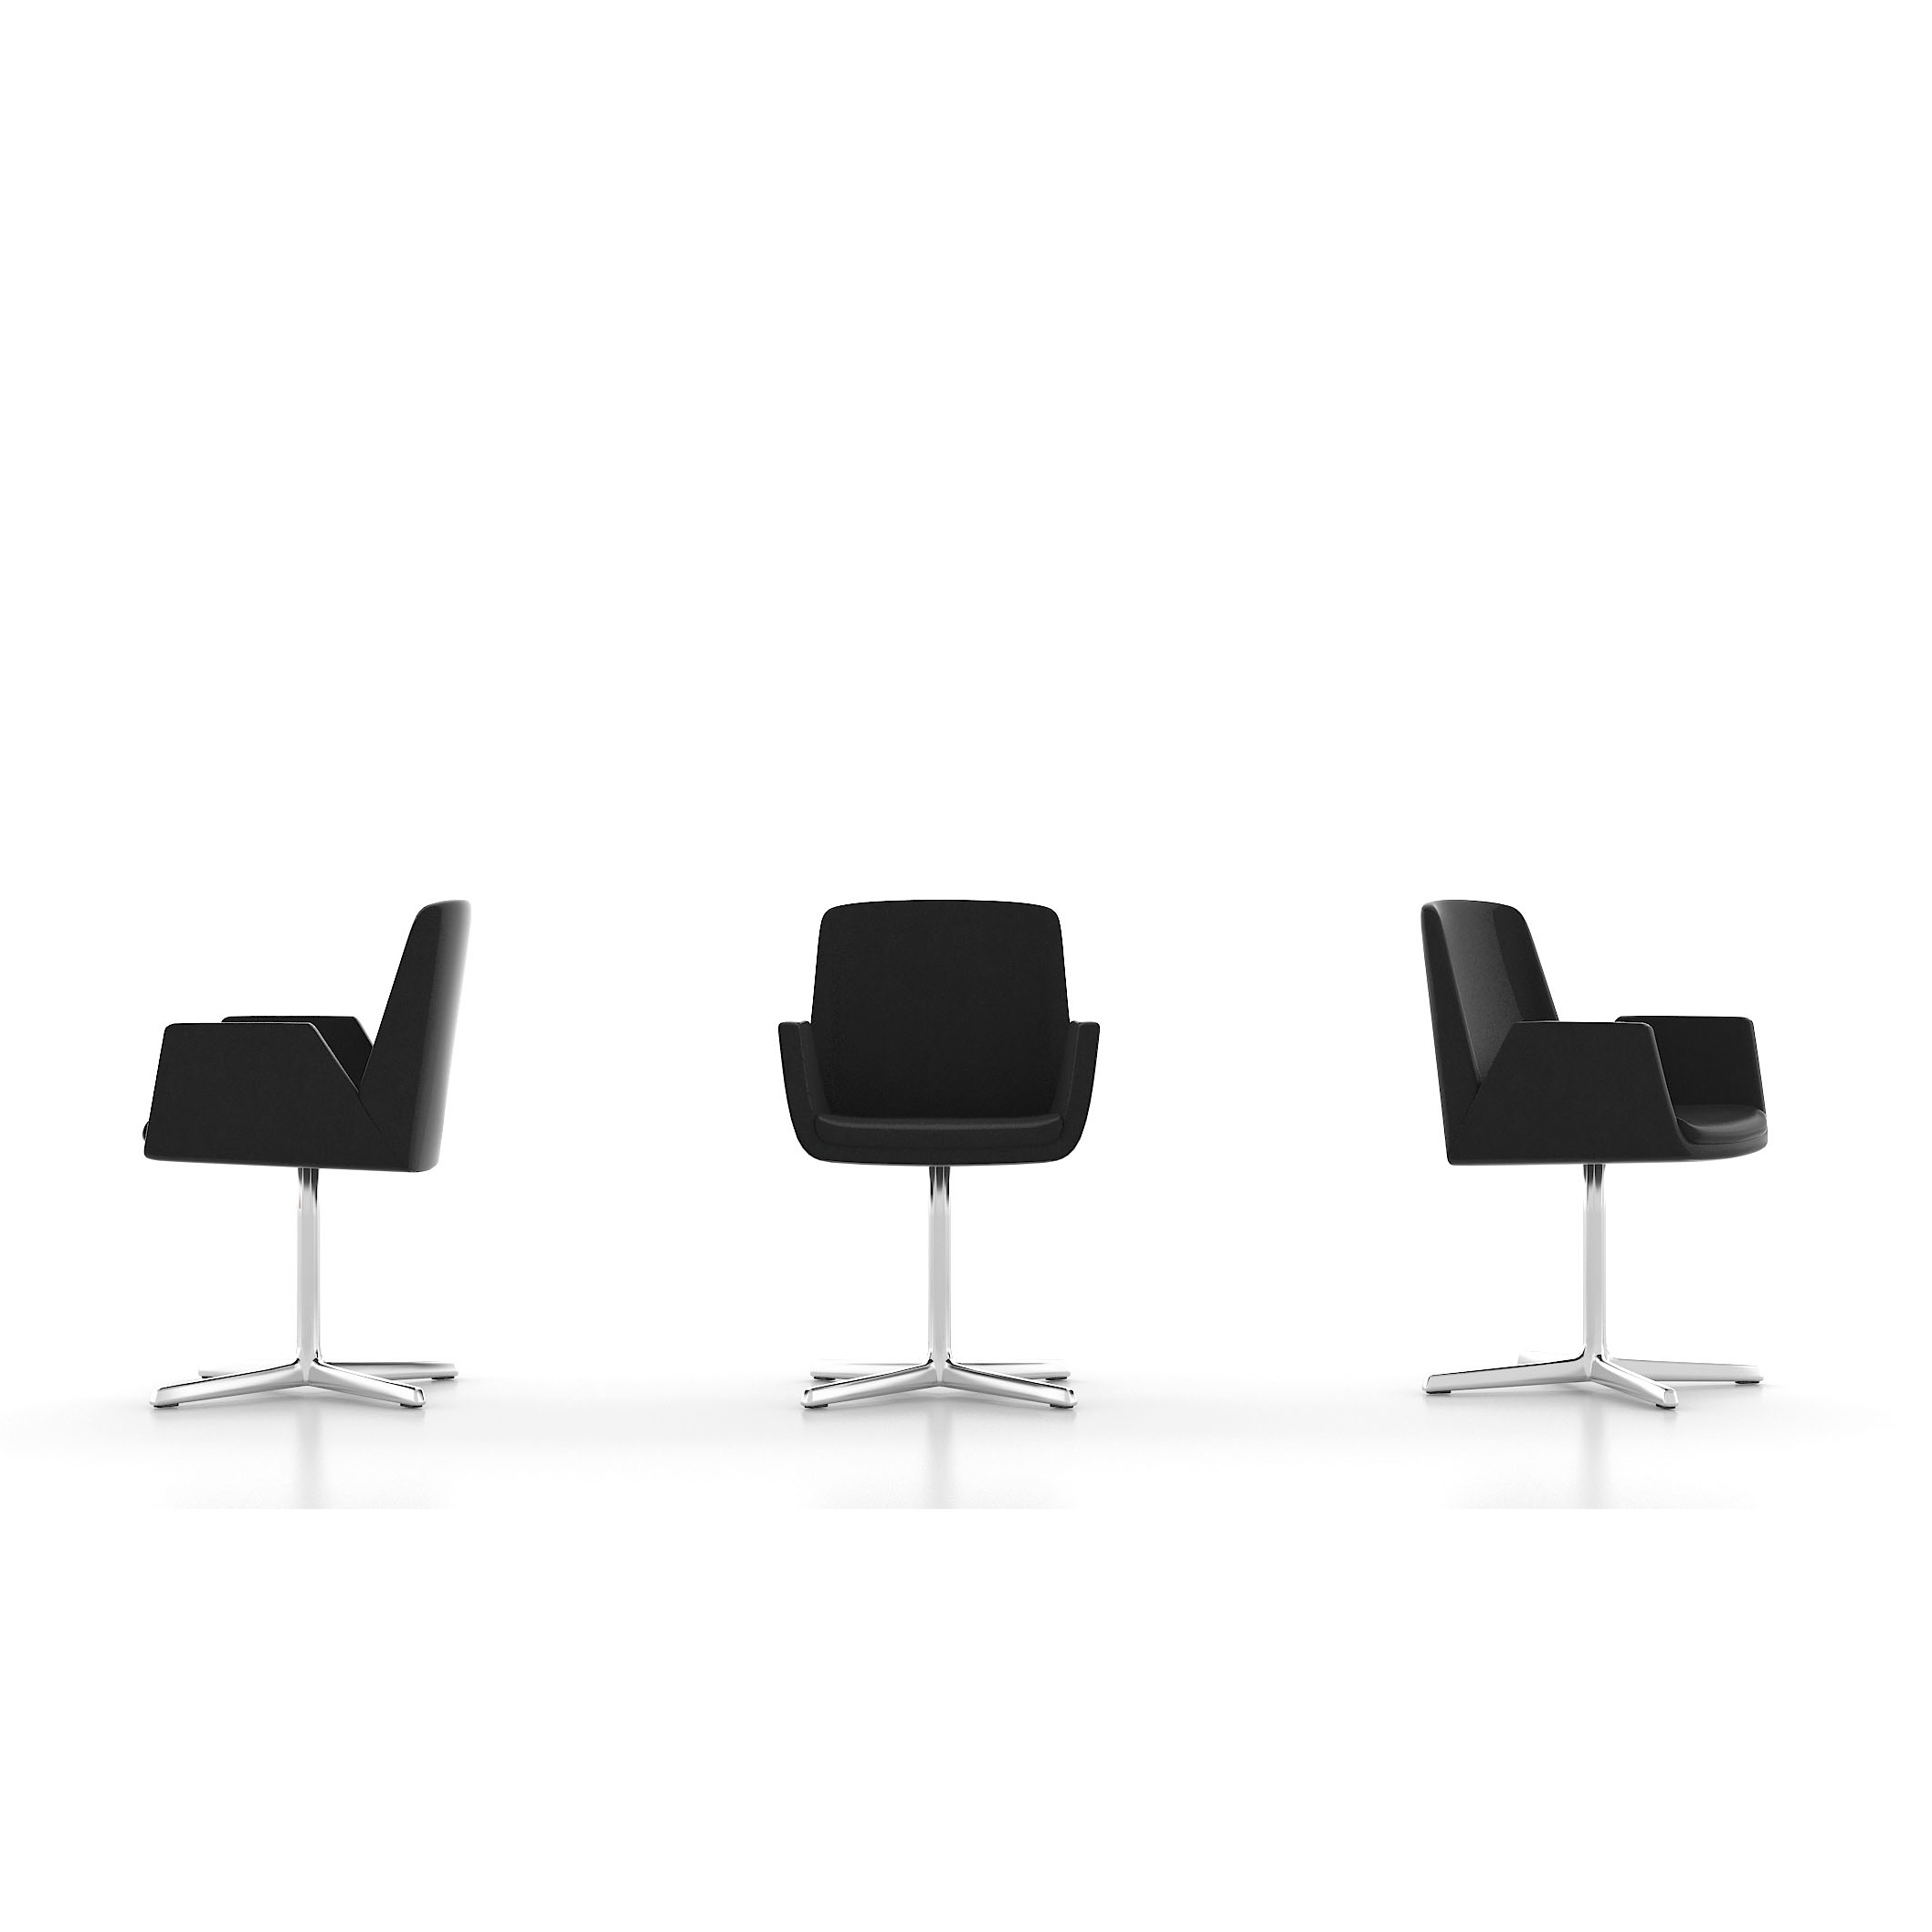 Reception Chairs chair on single pole base